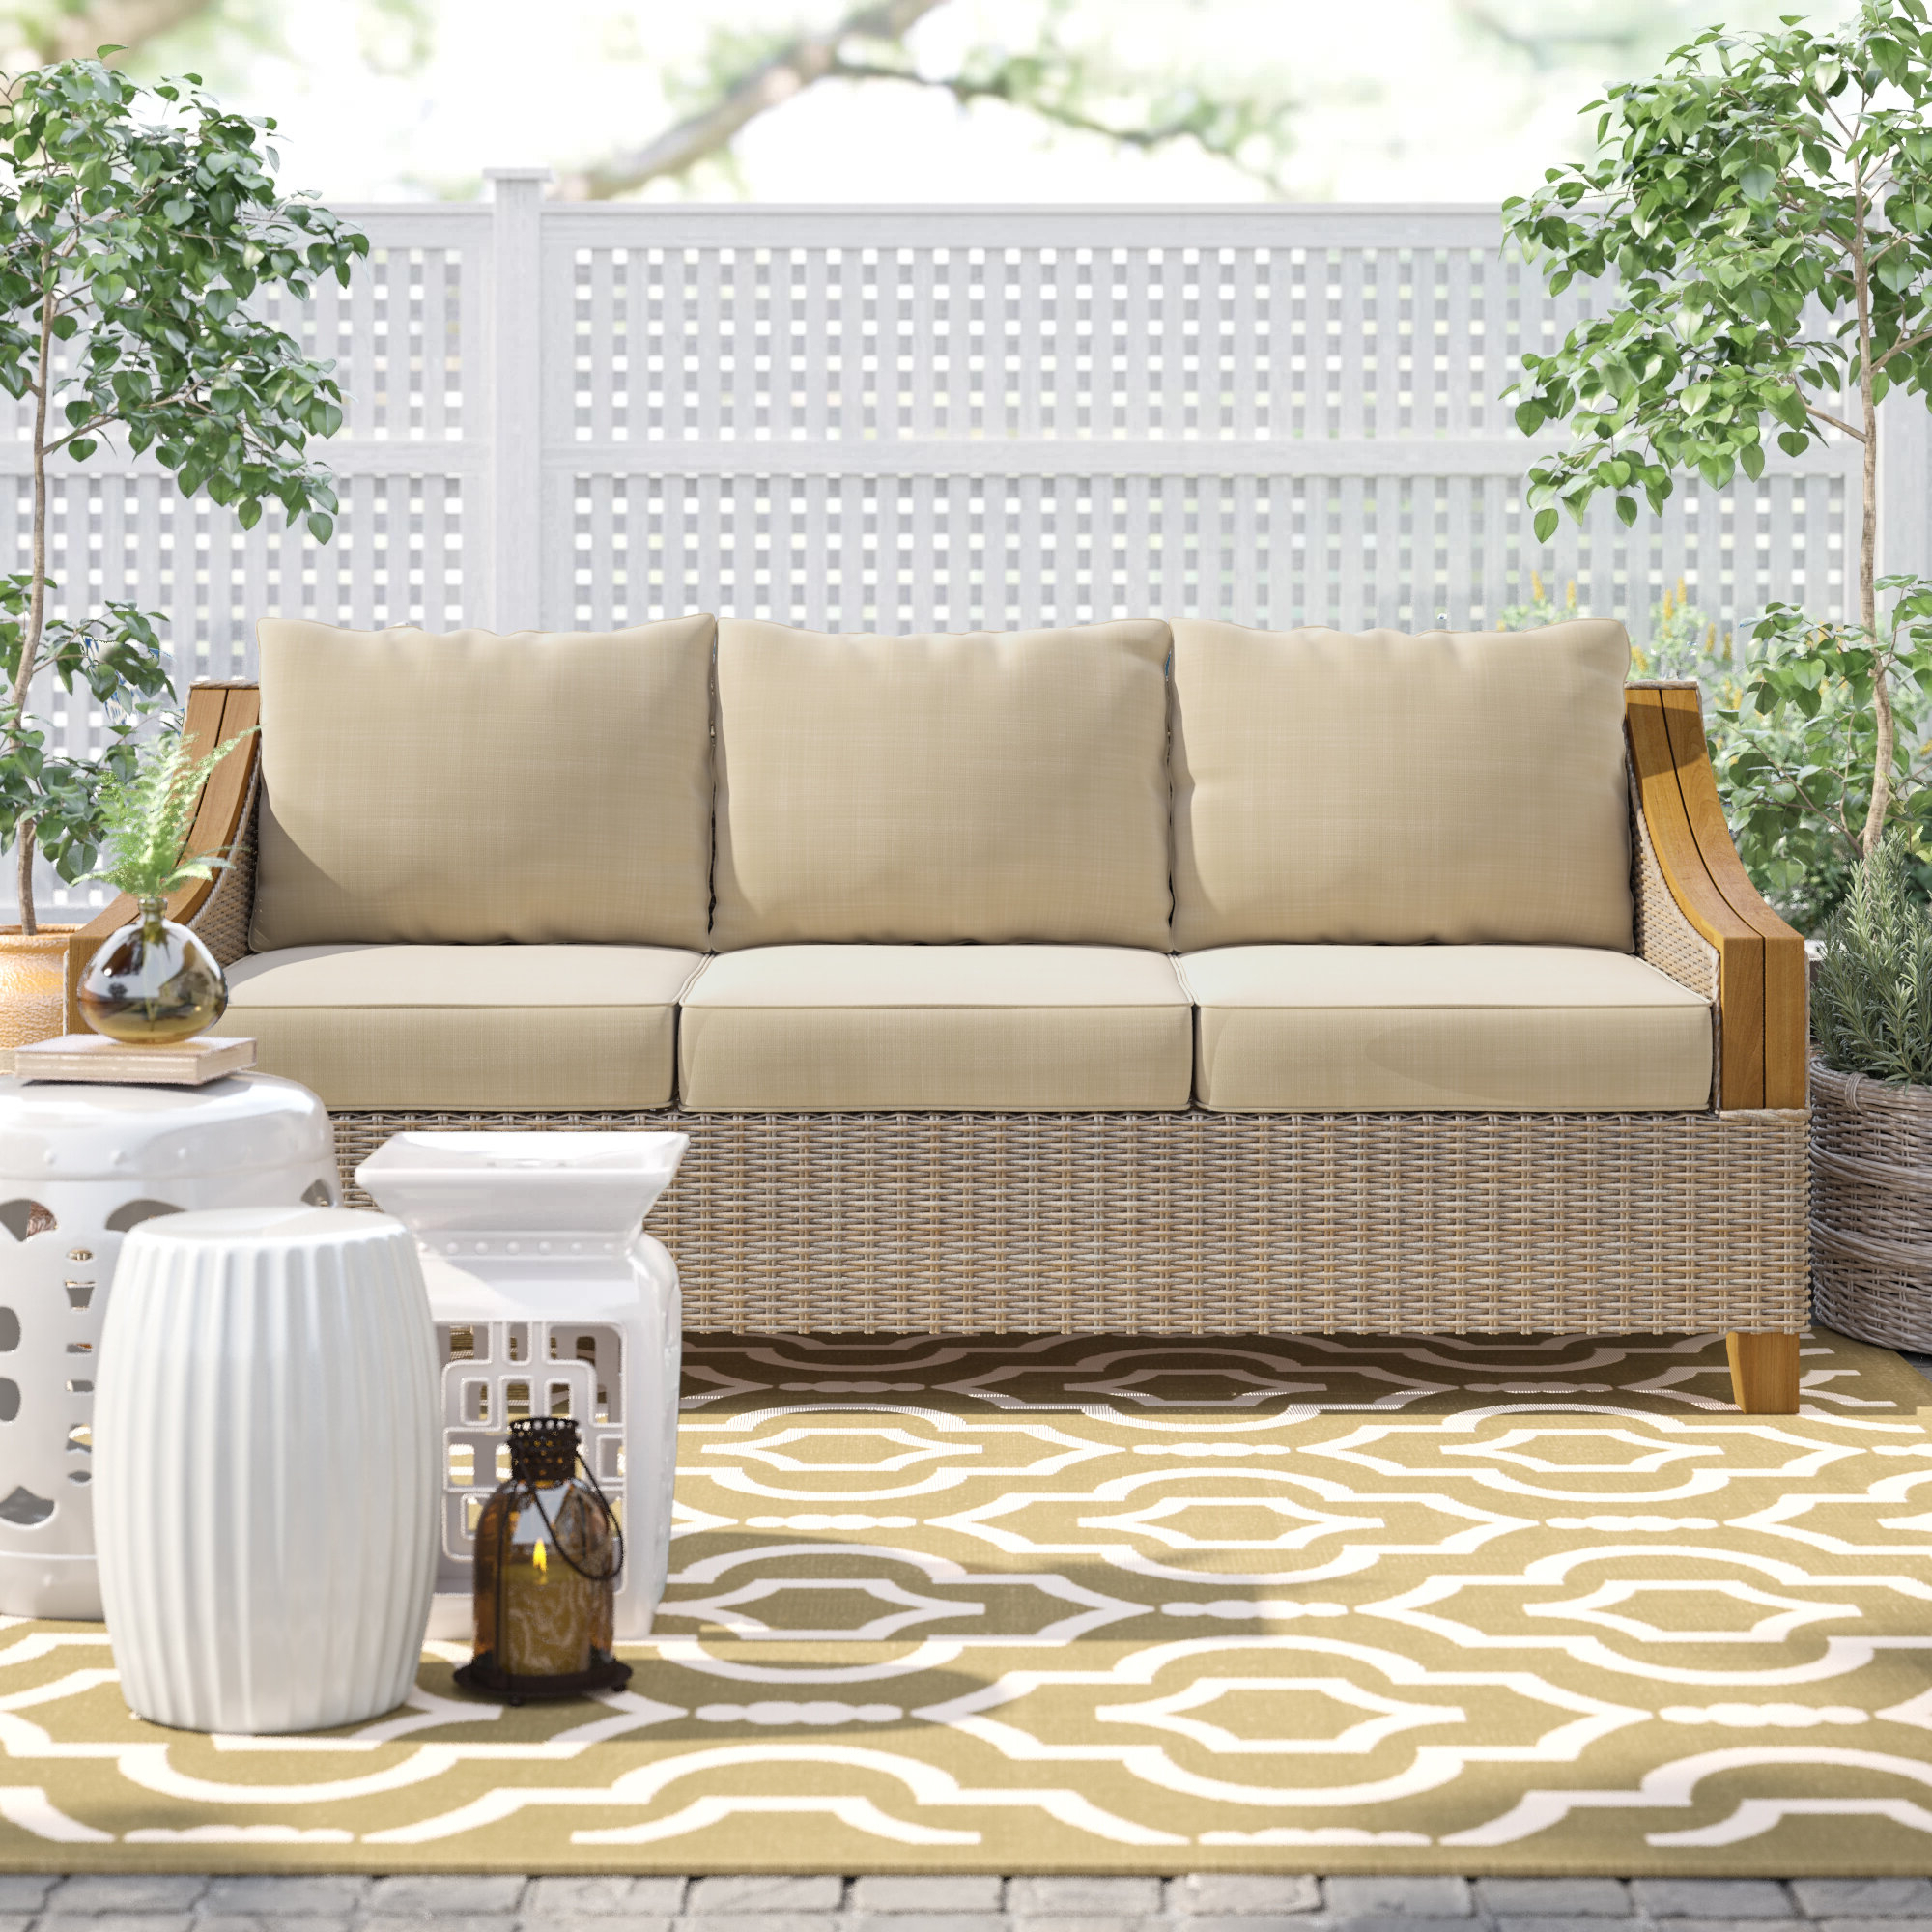 Famous O'kean Teak Patio Sofas With Cushions For Kincaid Teak Patio Sofa With Sunbrella Cushions (View 8 of 25)